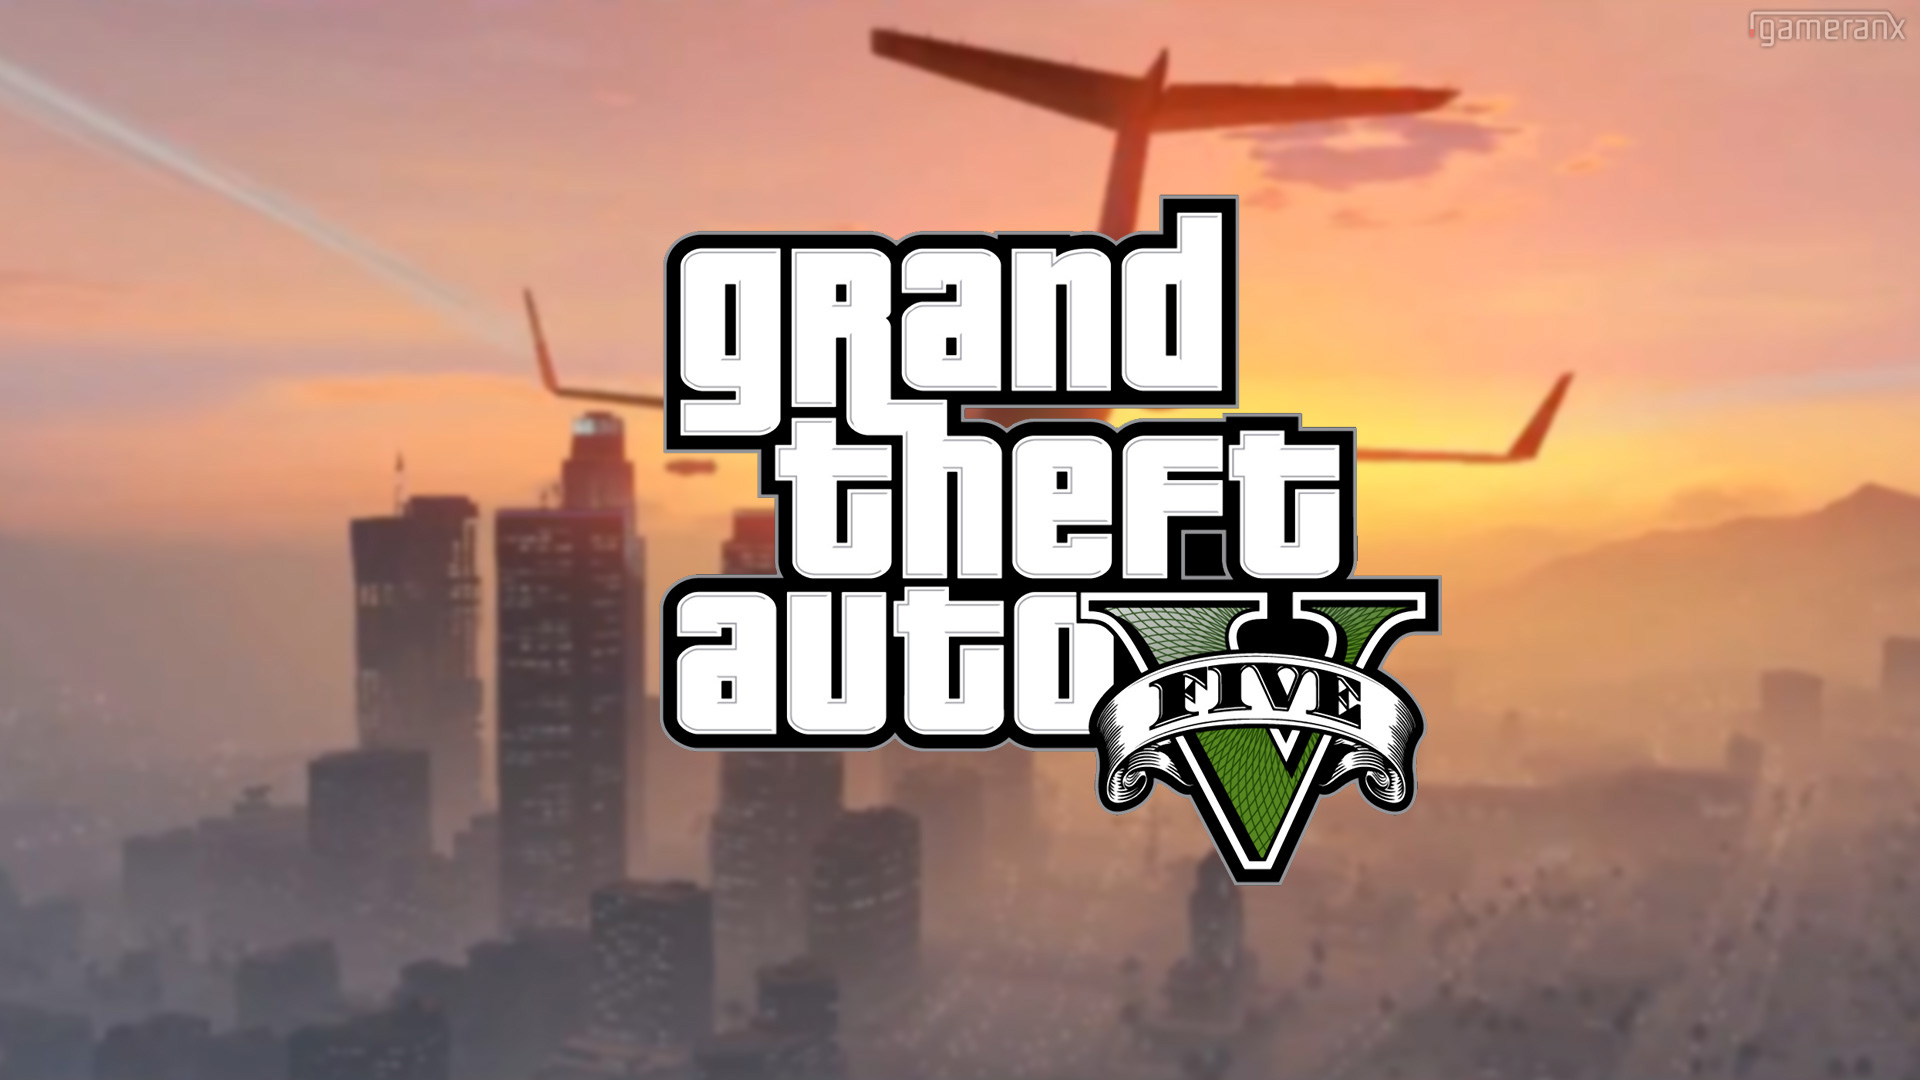 Exclusive GTA V Wallpapers Grand Theft Auto V   GTA 5 Cheats 1920x1080